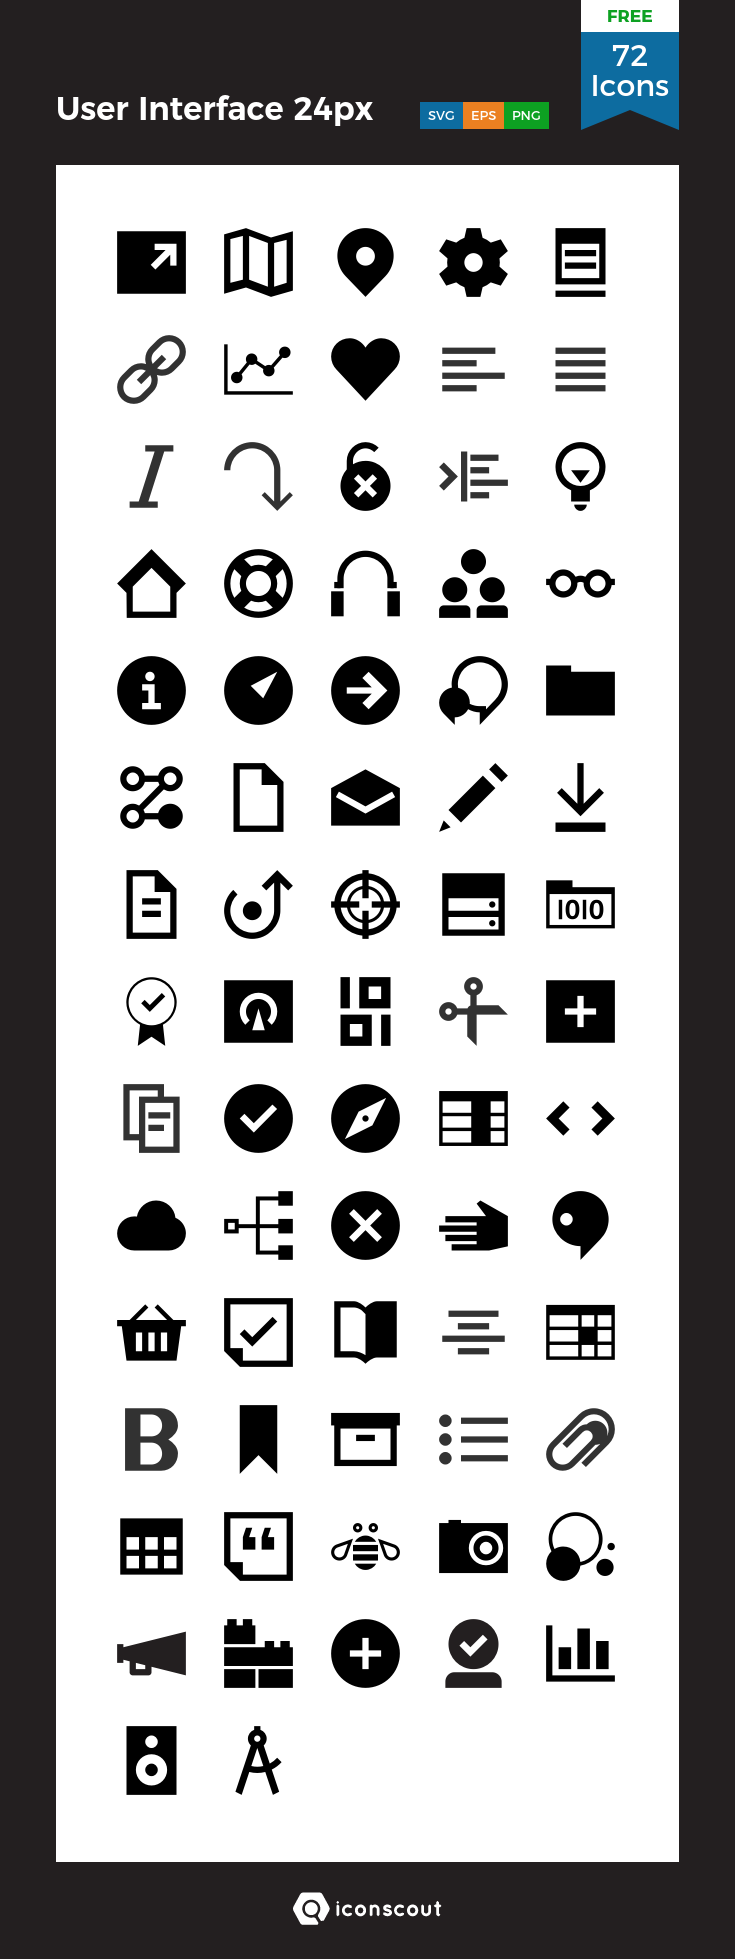 Download User Interface 24px Icon pack Available in SVG